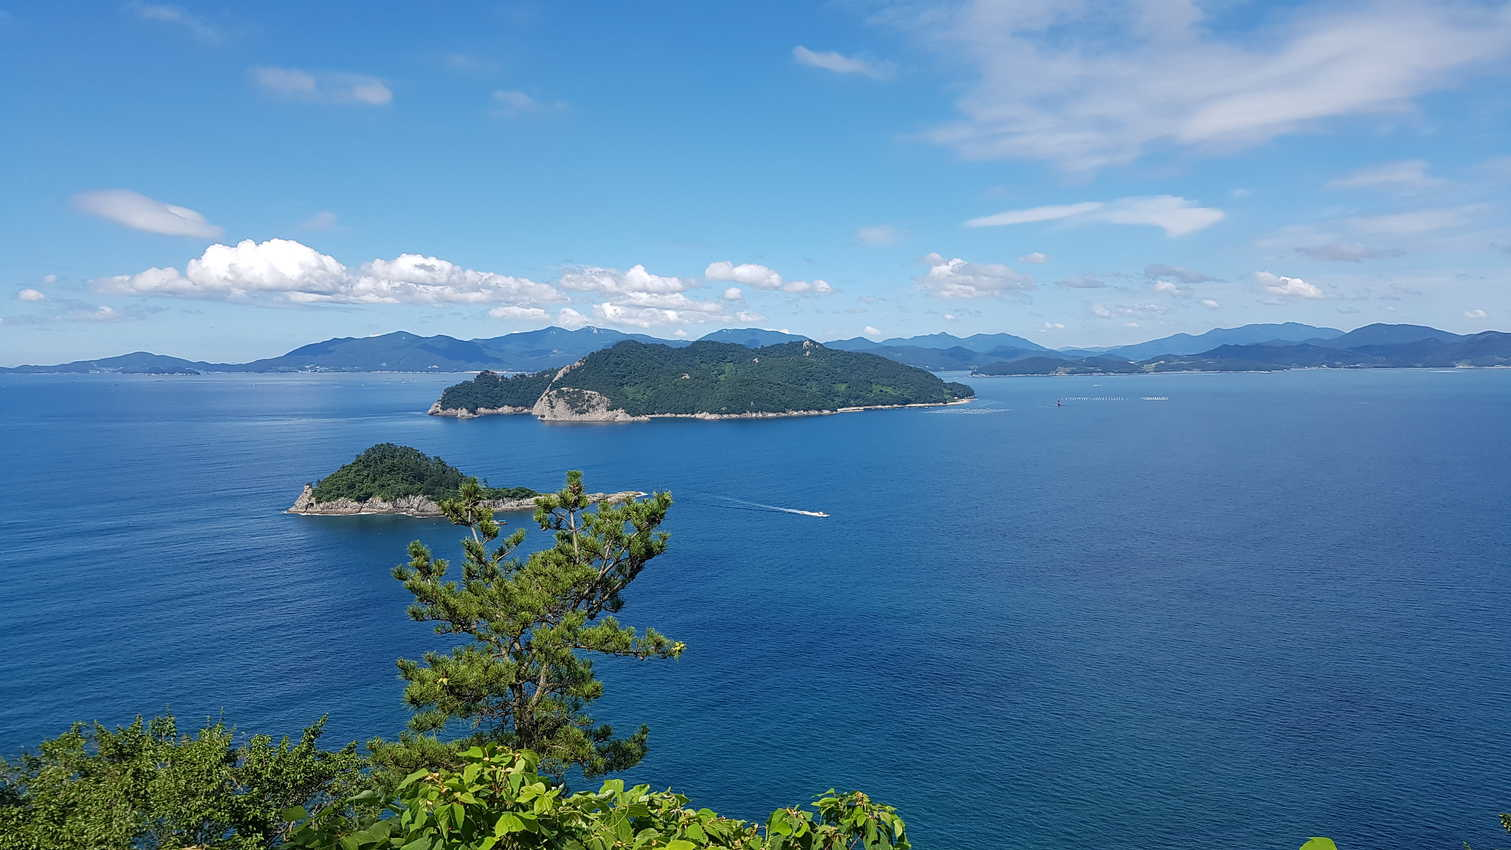 The theme of this hike? Surrounded by blue in Saryangdo, South Korea.